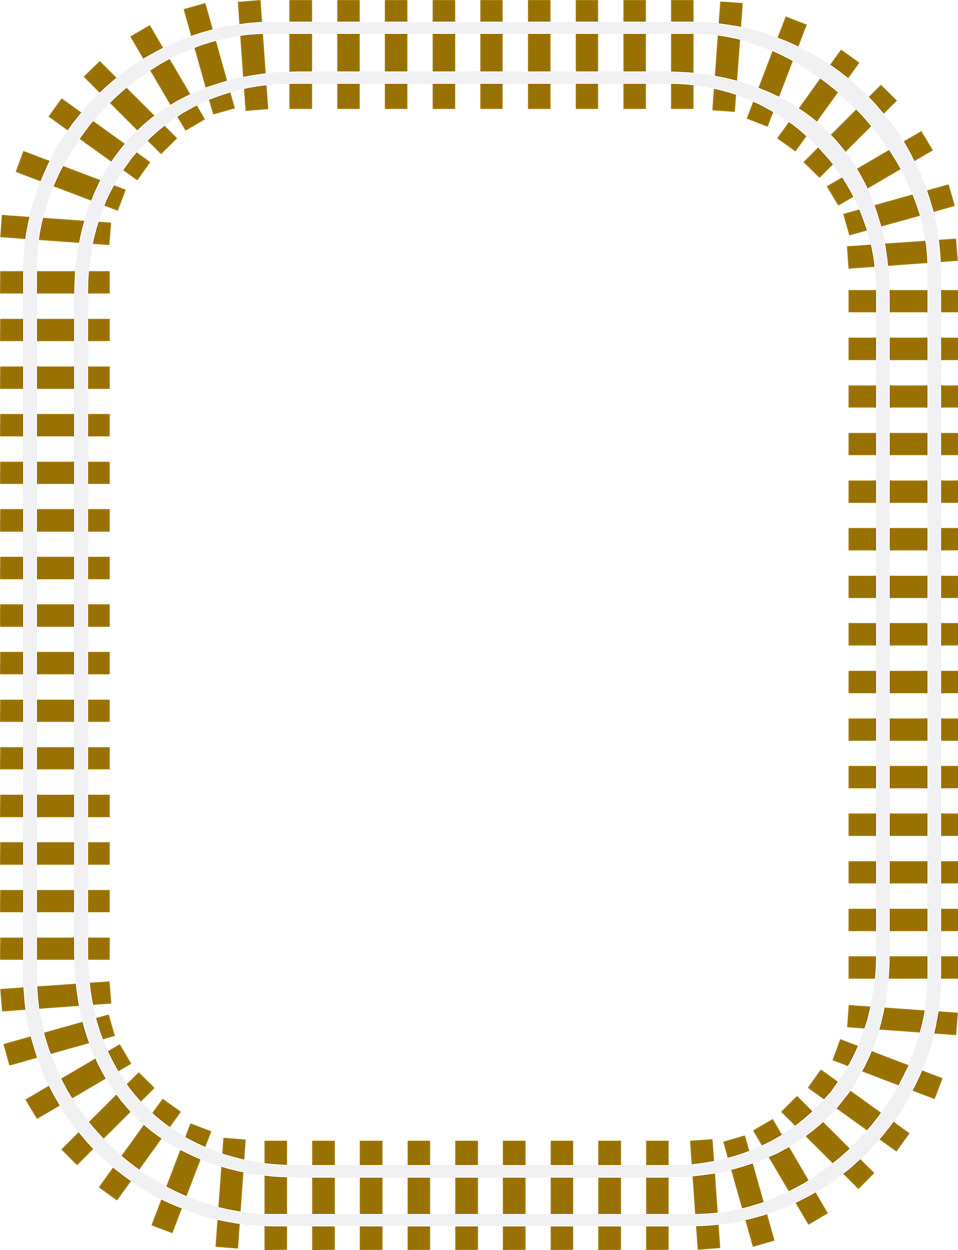 Illustration Of A Blank Railroad Track Frame Border Free